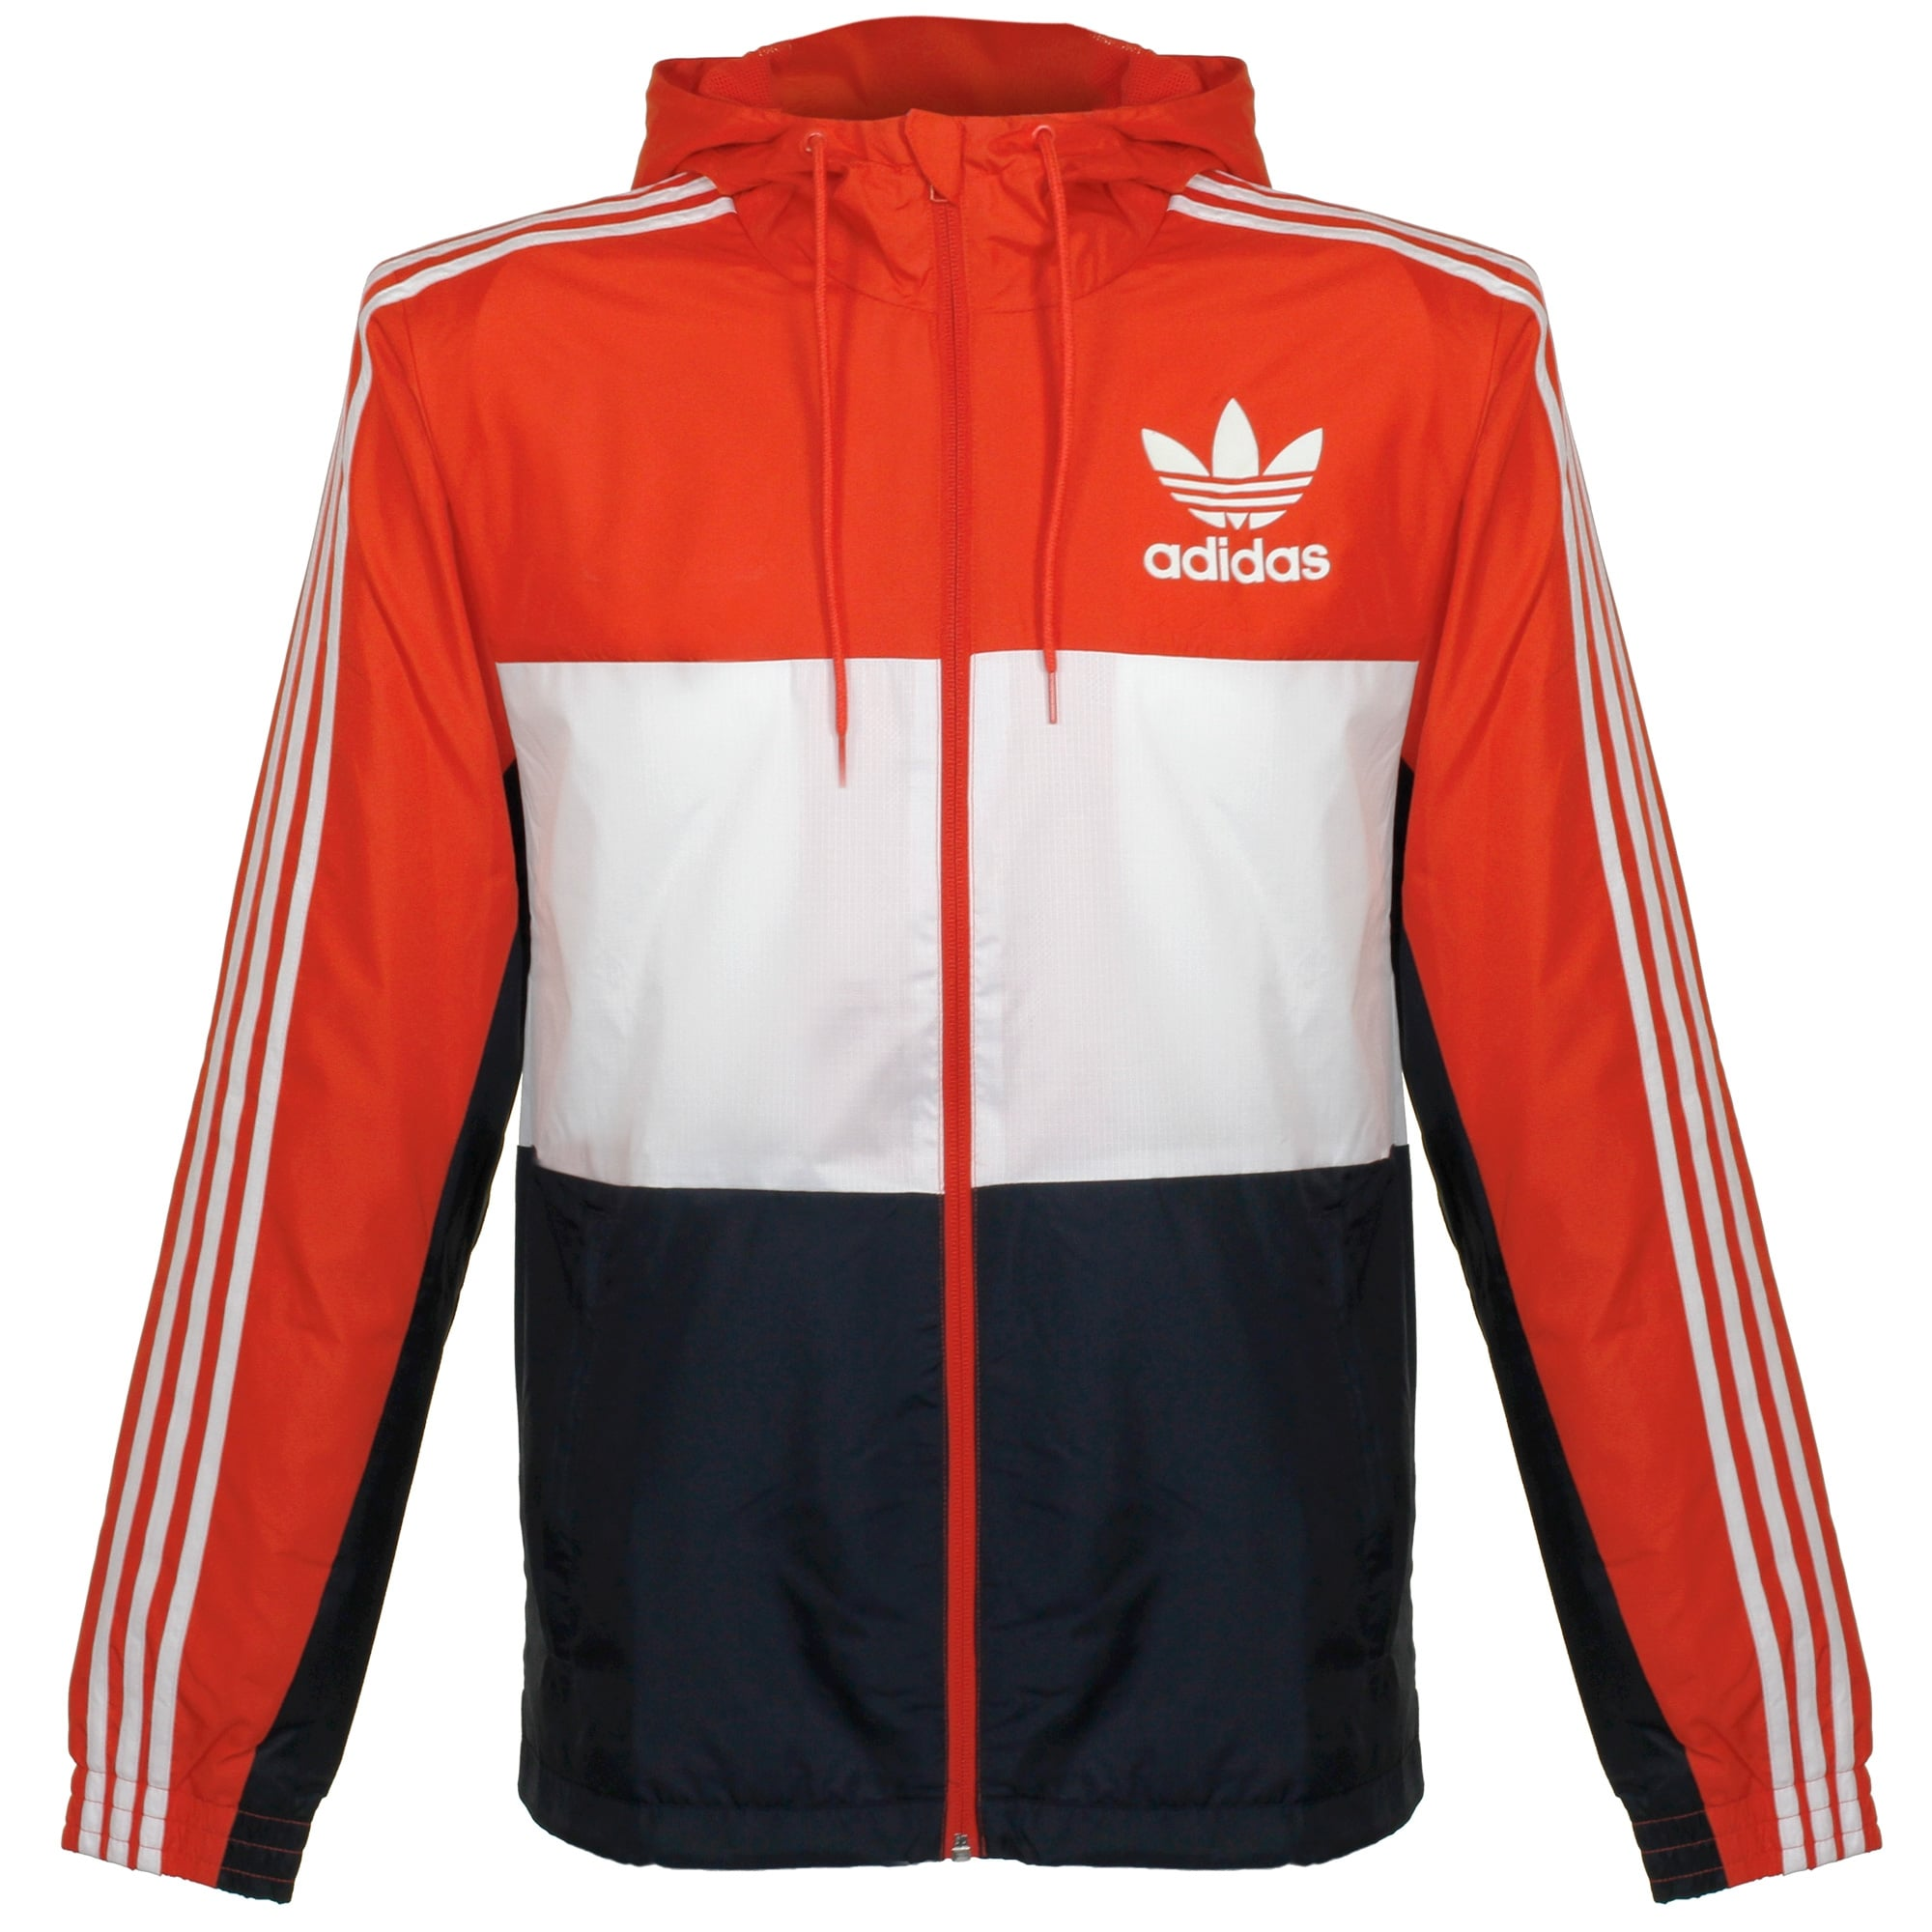 adidas originals jackets clfn red windbreaker. Black Bedroom Furniture Sets. Home Design Ideas